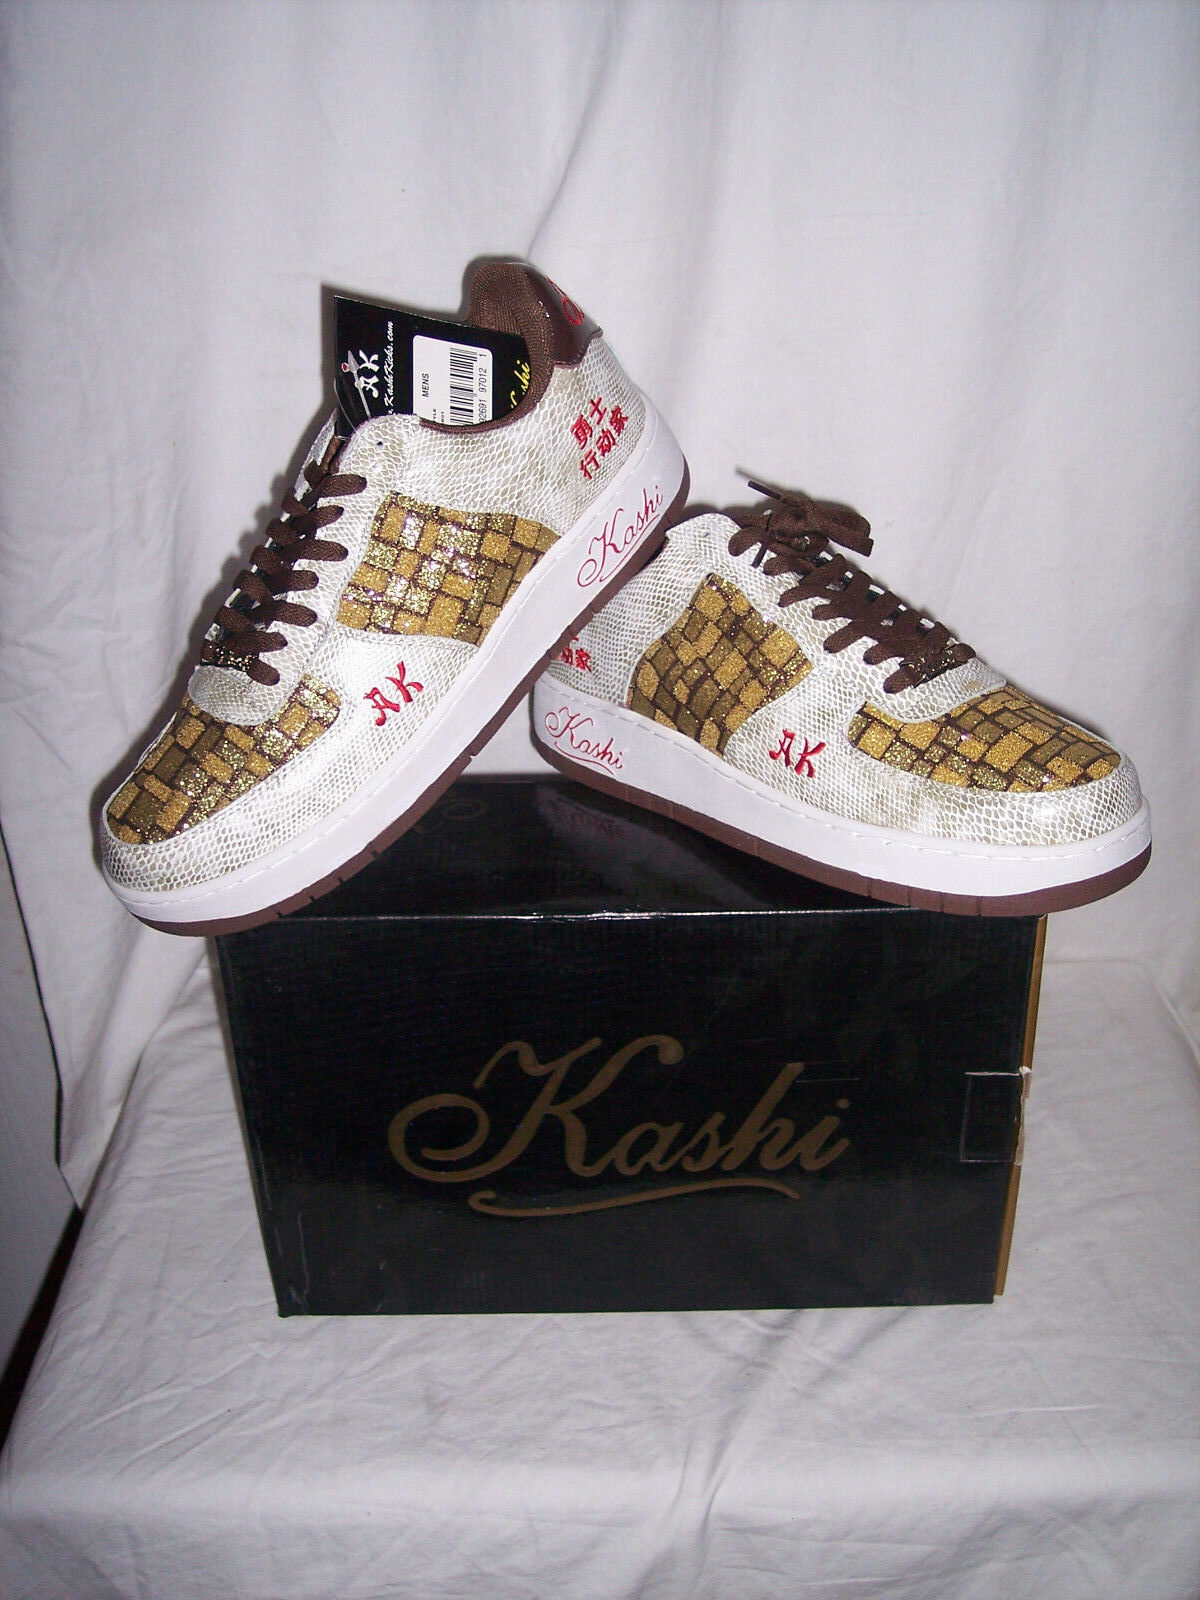 New Men's Kashi Sneaker AK01 White Snakeskin pattern gold Plaid Tops Size 12